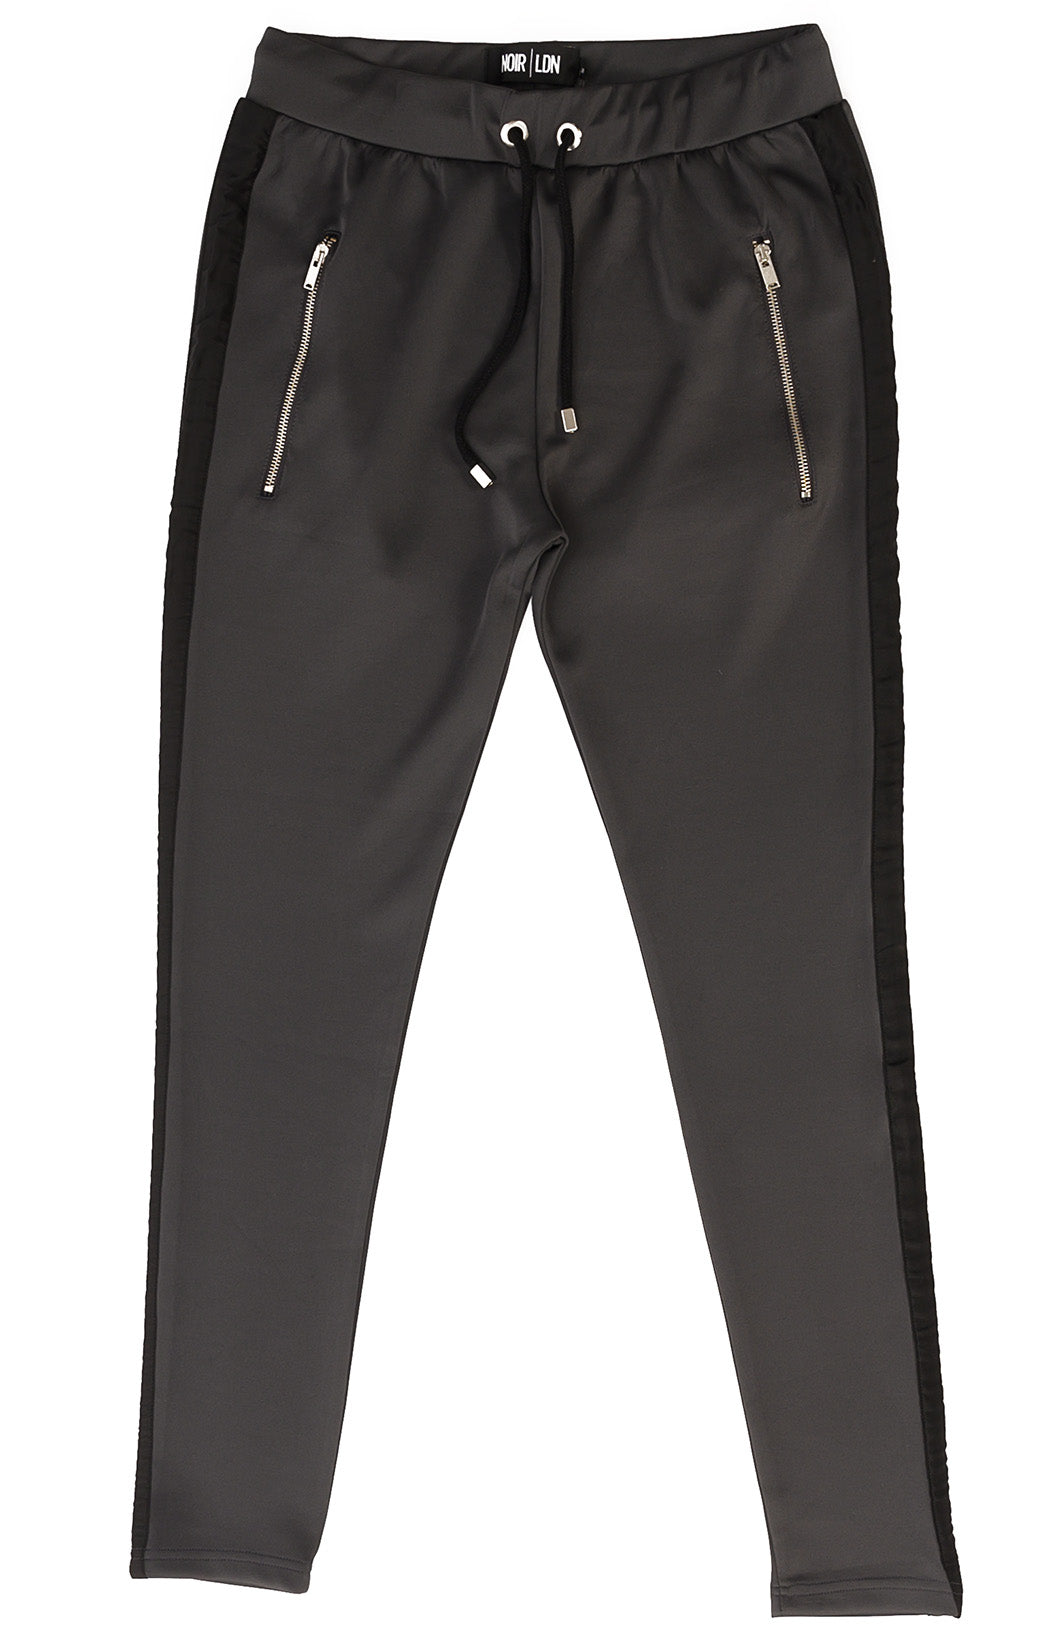 Front view of NOIR LDN with tags Track pant  Size: Medium